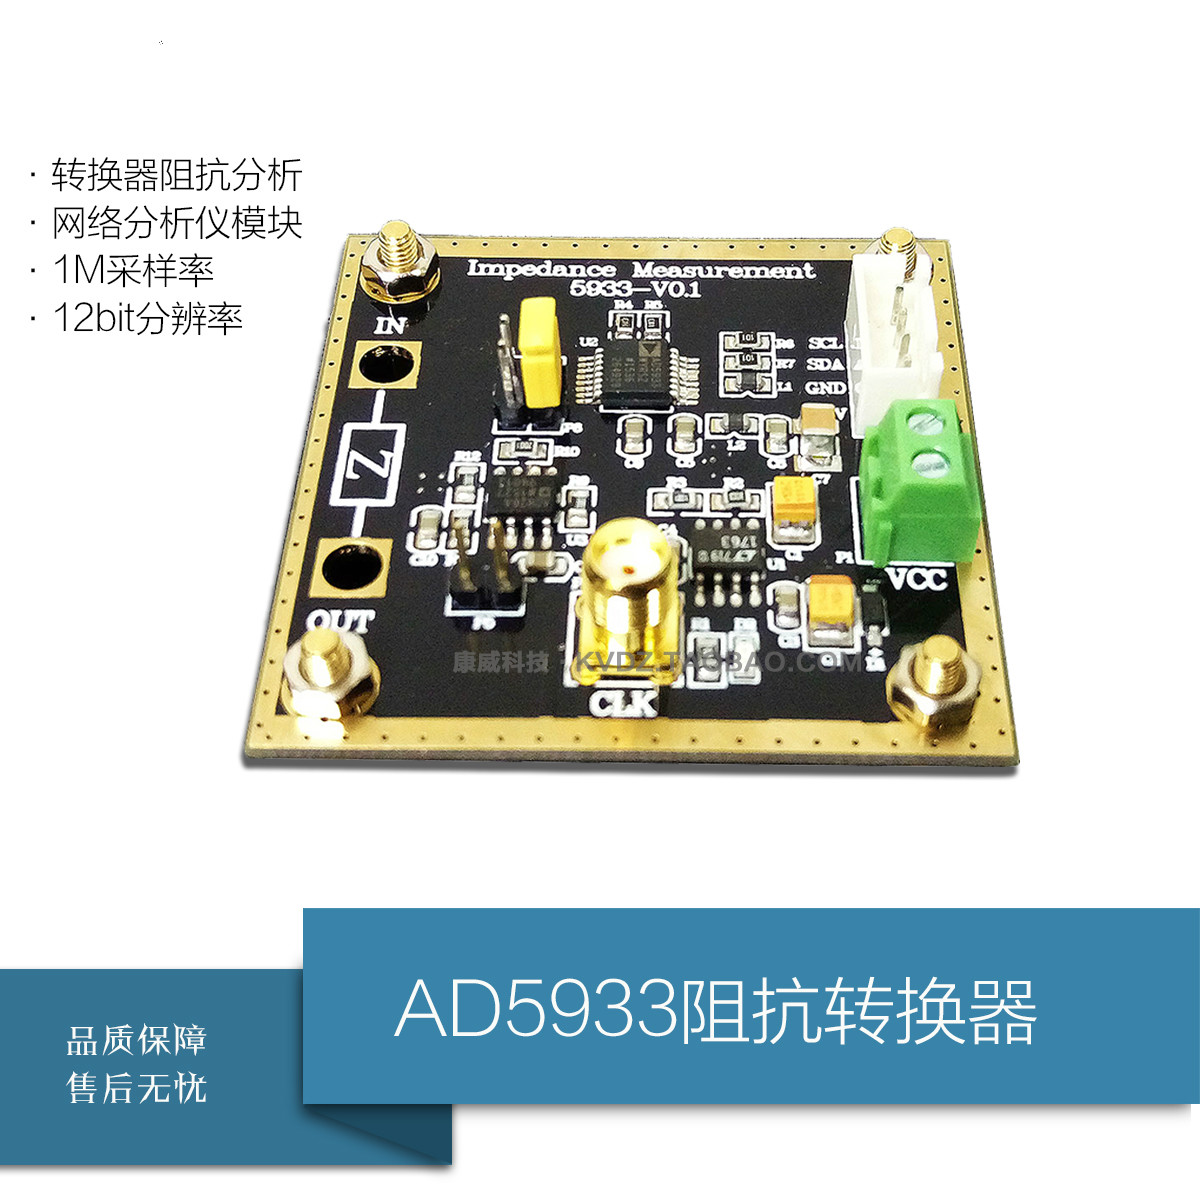 Measuring Resistance with 1M Sampling Rate and 12bit Resolution in AD5933 Impedance Converter Network Analyser Module